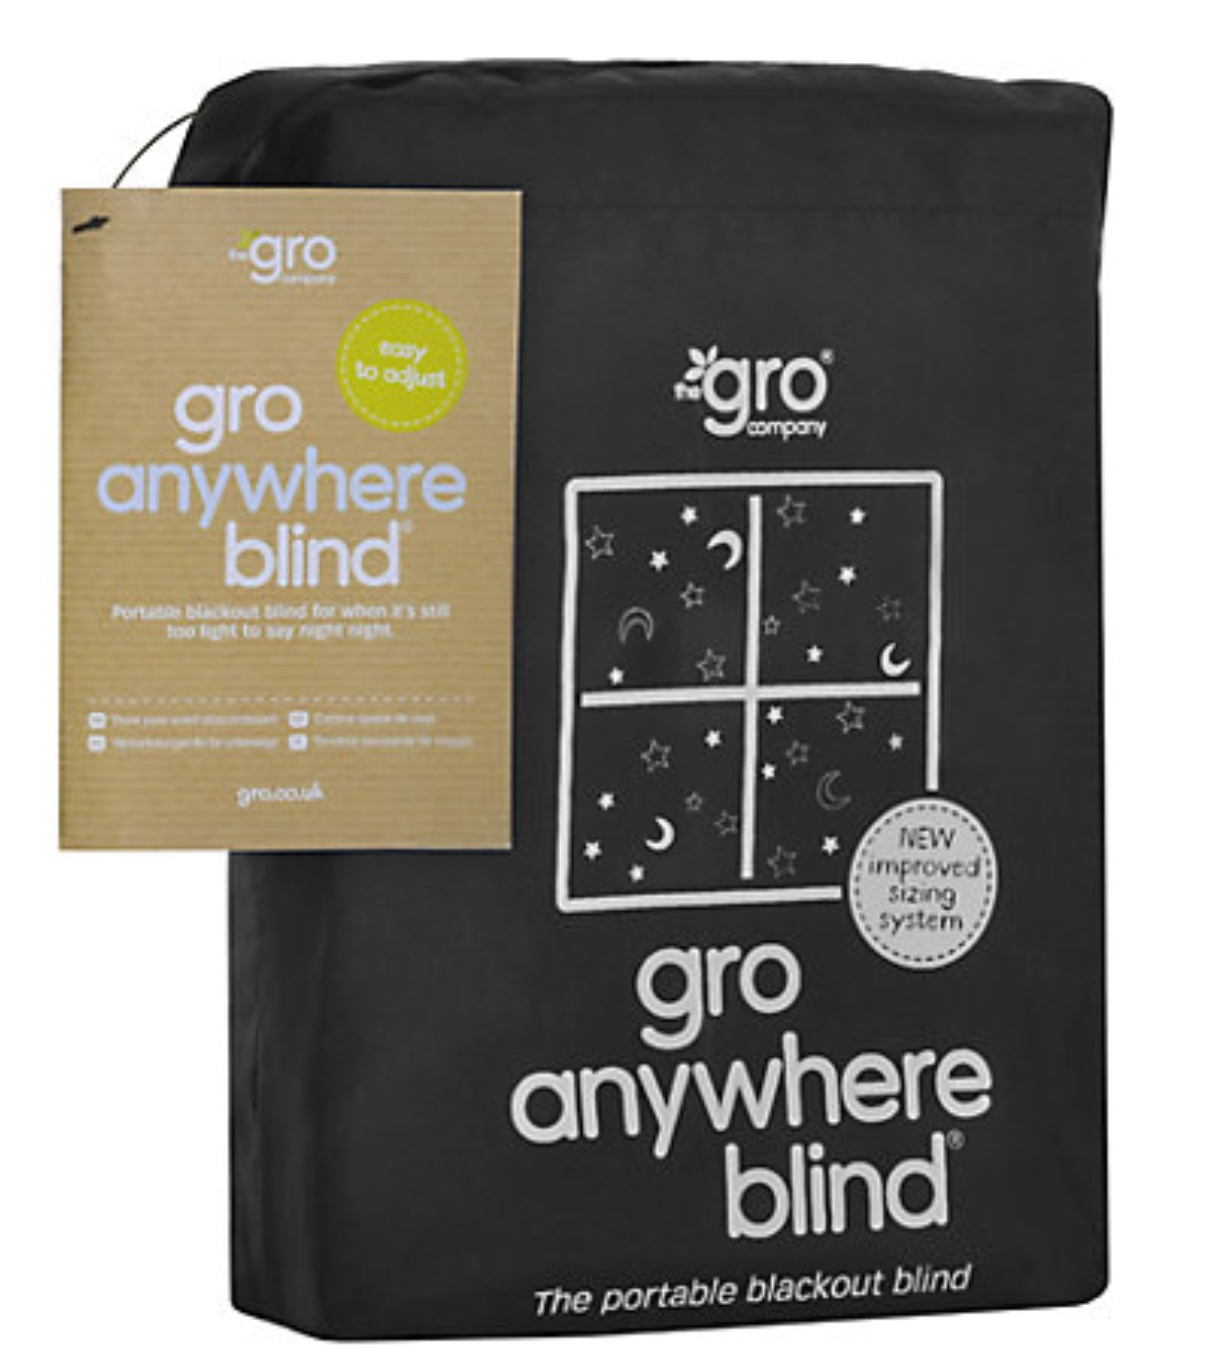 The Gro Blind - a total lifesaver!